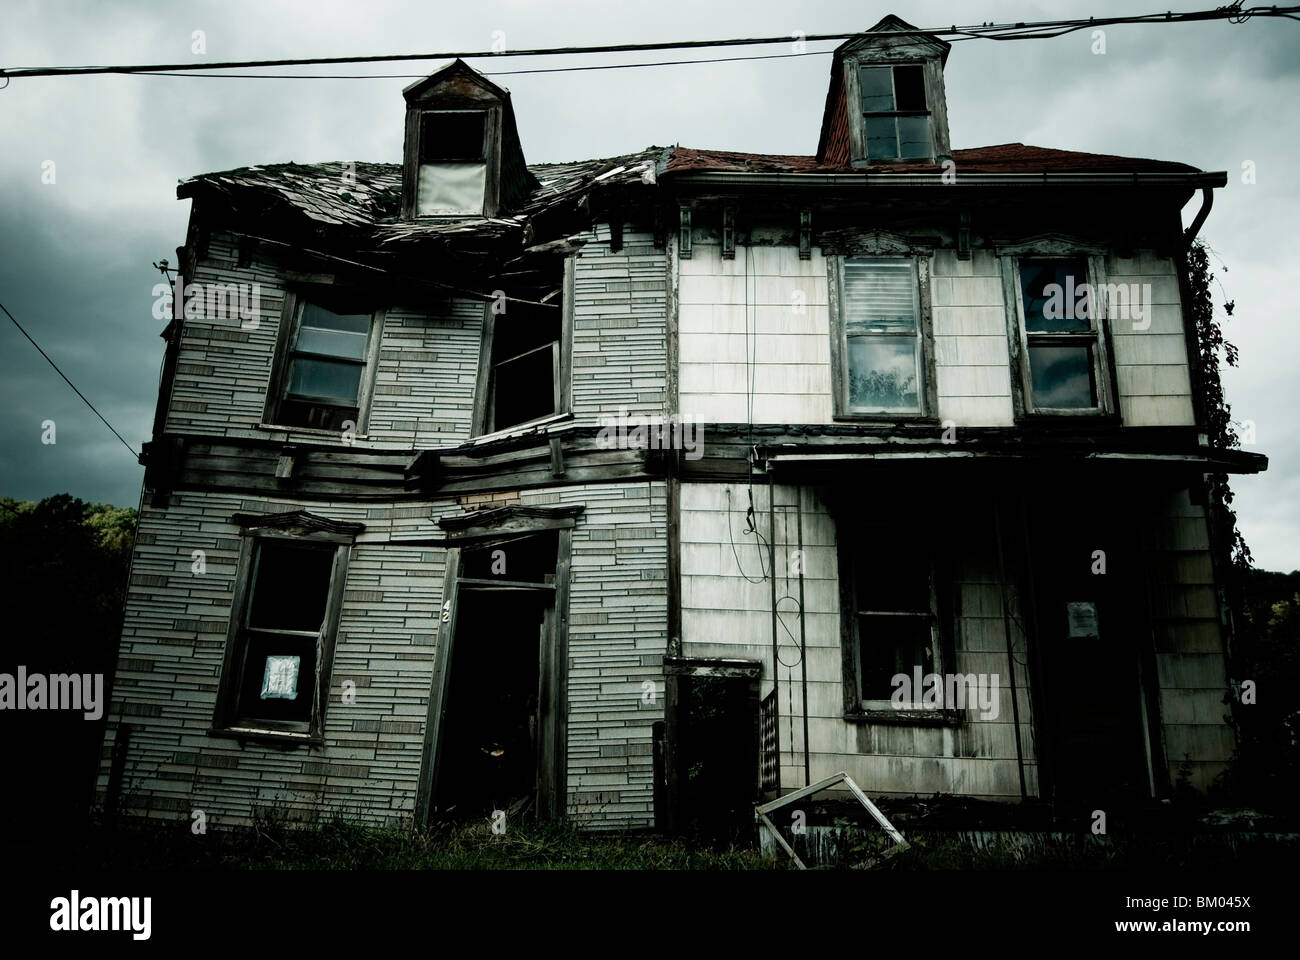 An abandoned and dilapidated house in Pennsylvania, USA. - Stock Image